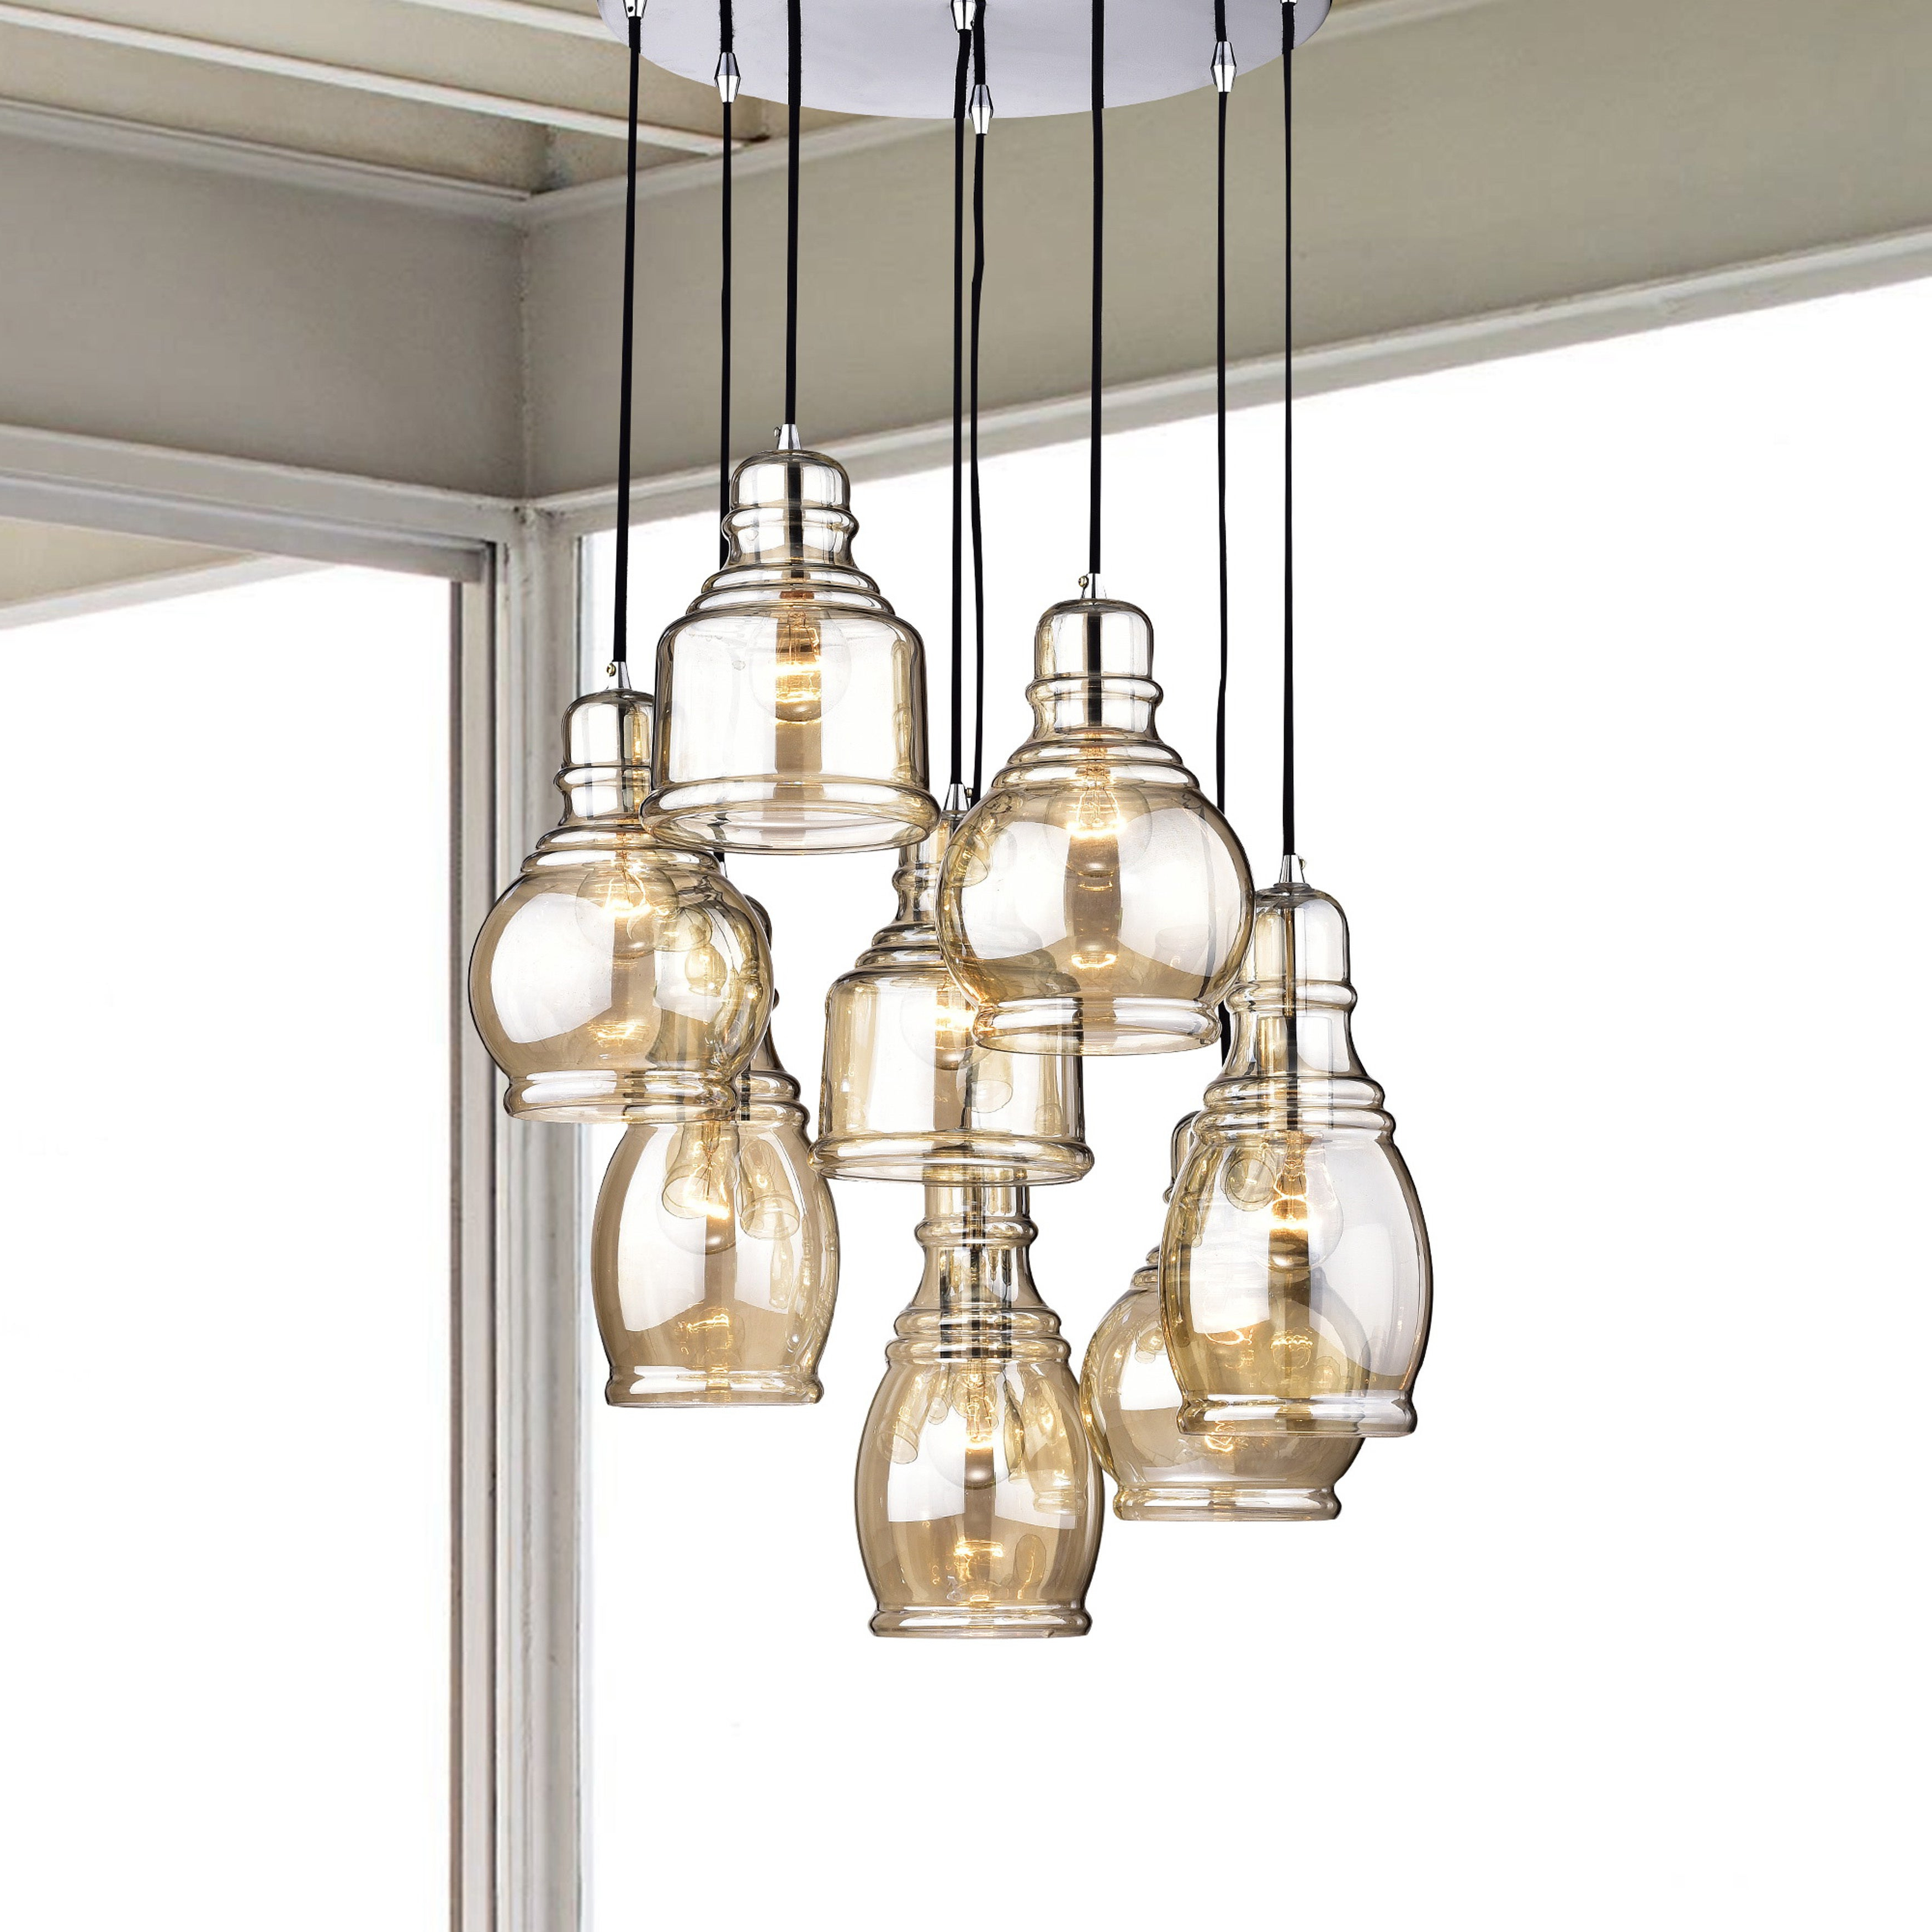 Well Liked Mariana 8 Light Cognac Glass Cluster Pendant Chandelier With Chrome Finish  And Round Base For Pruett Cognac Glass 8 Light Cluster Pendants (View 18 of 20)